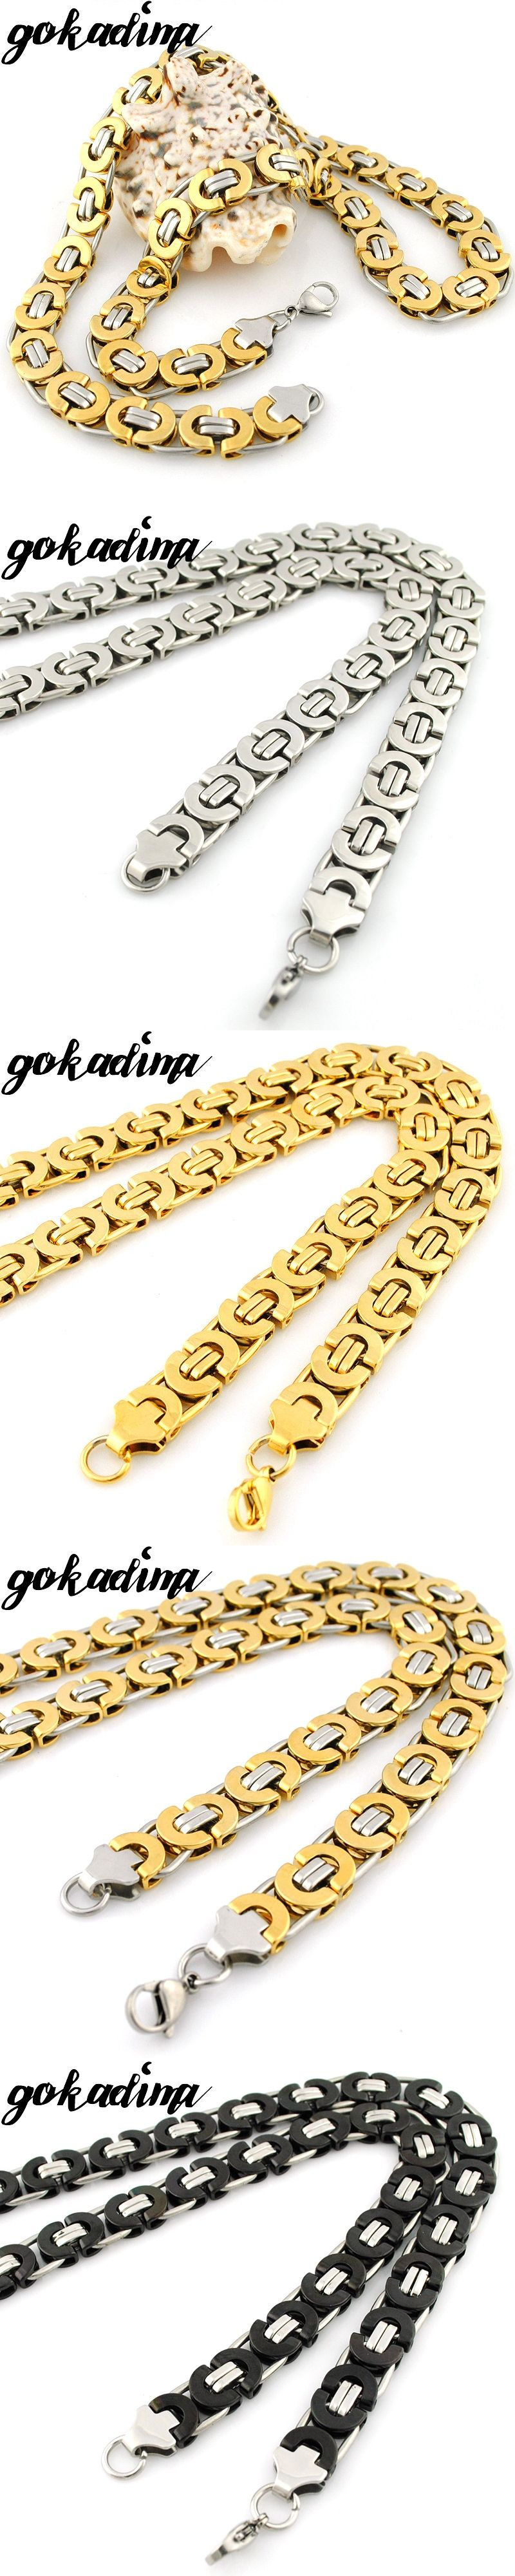 c jewelry chains artificial fashion chain wholesale costume